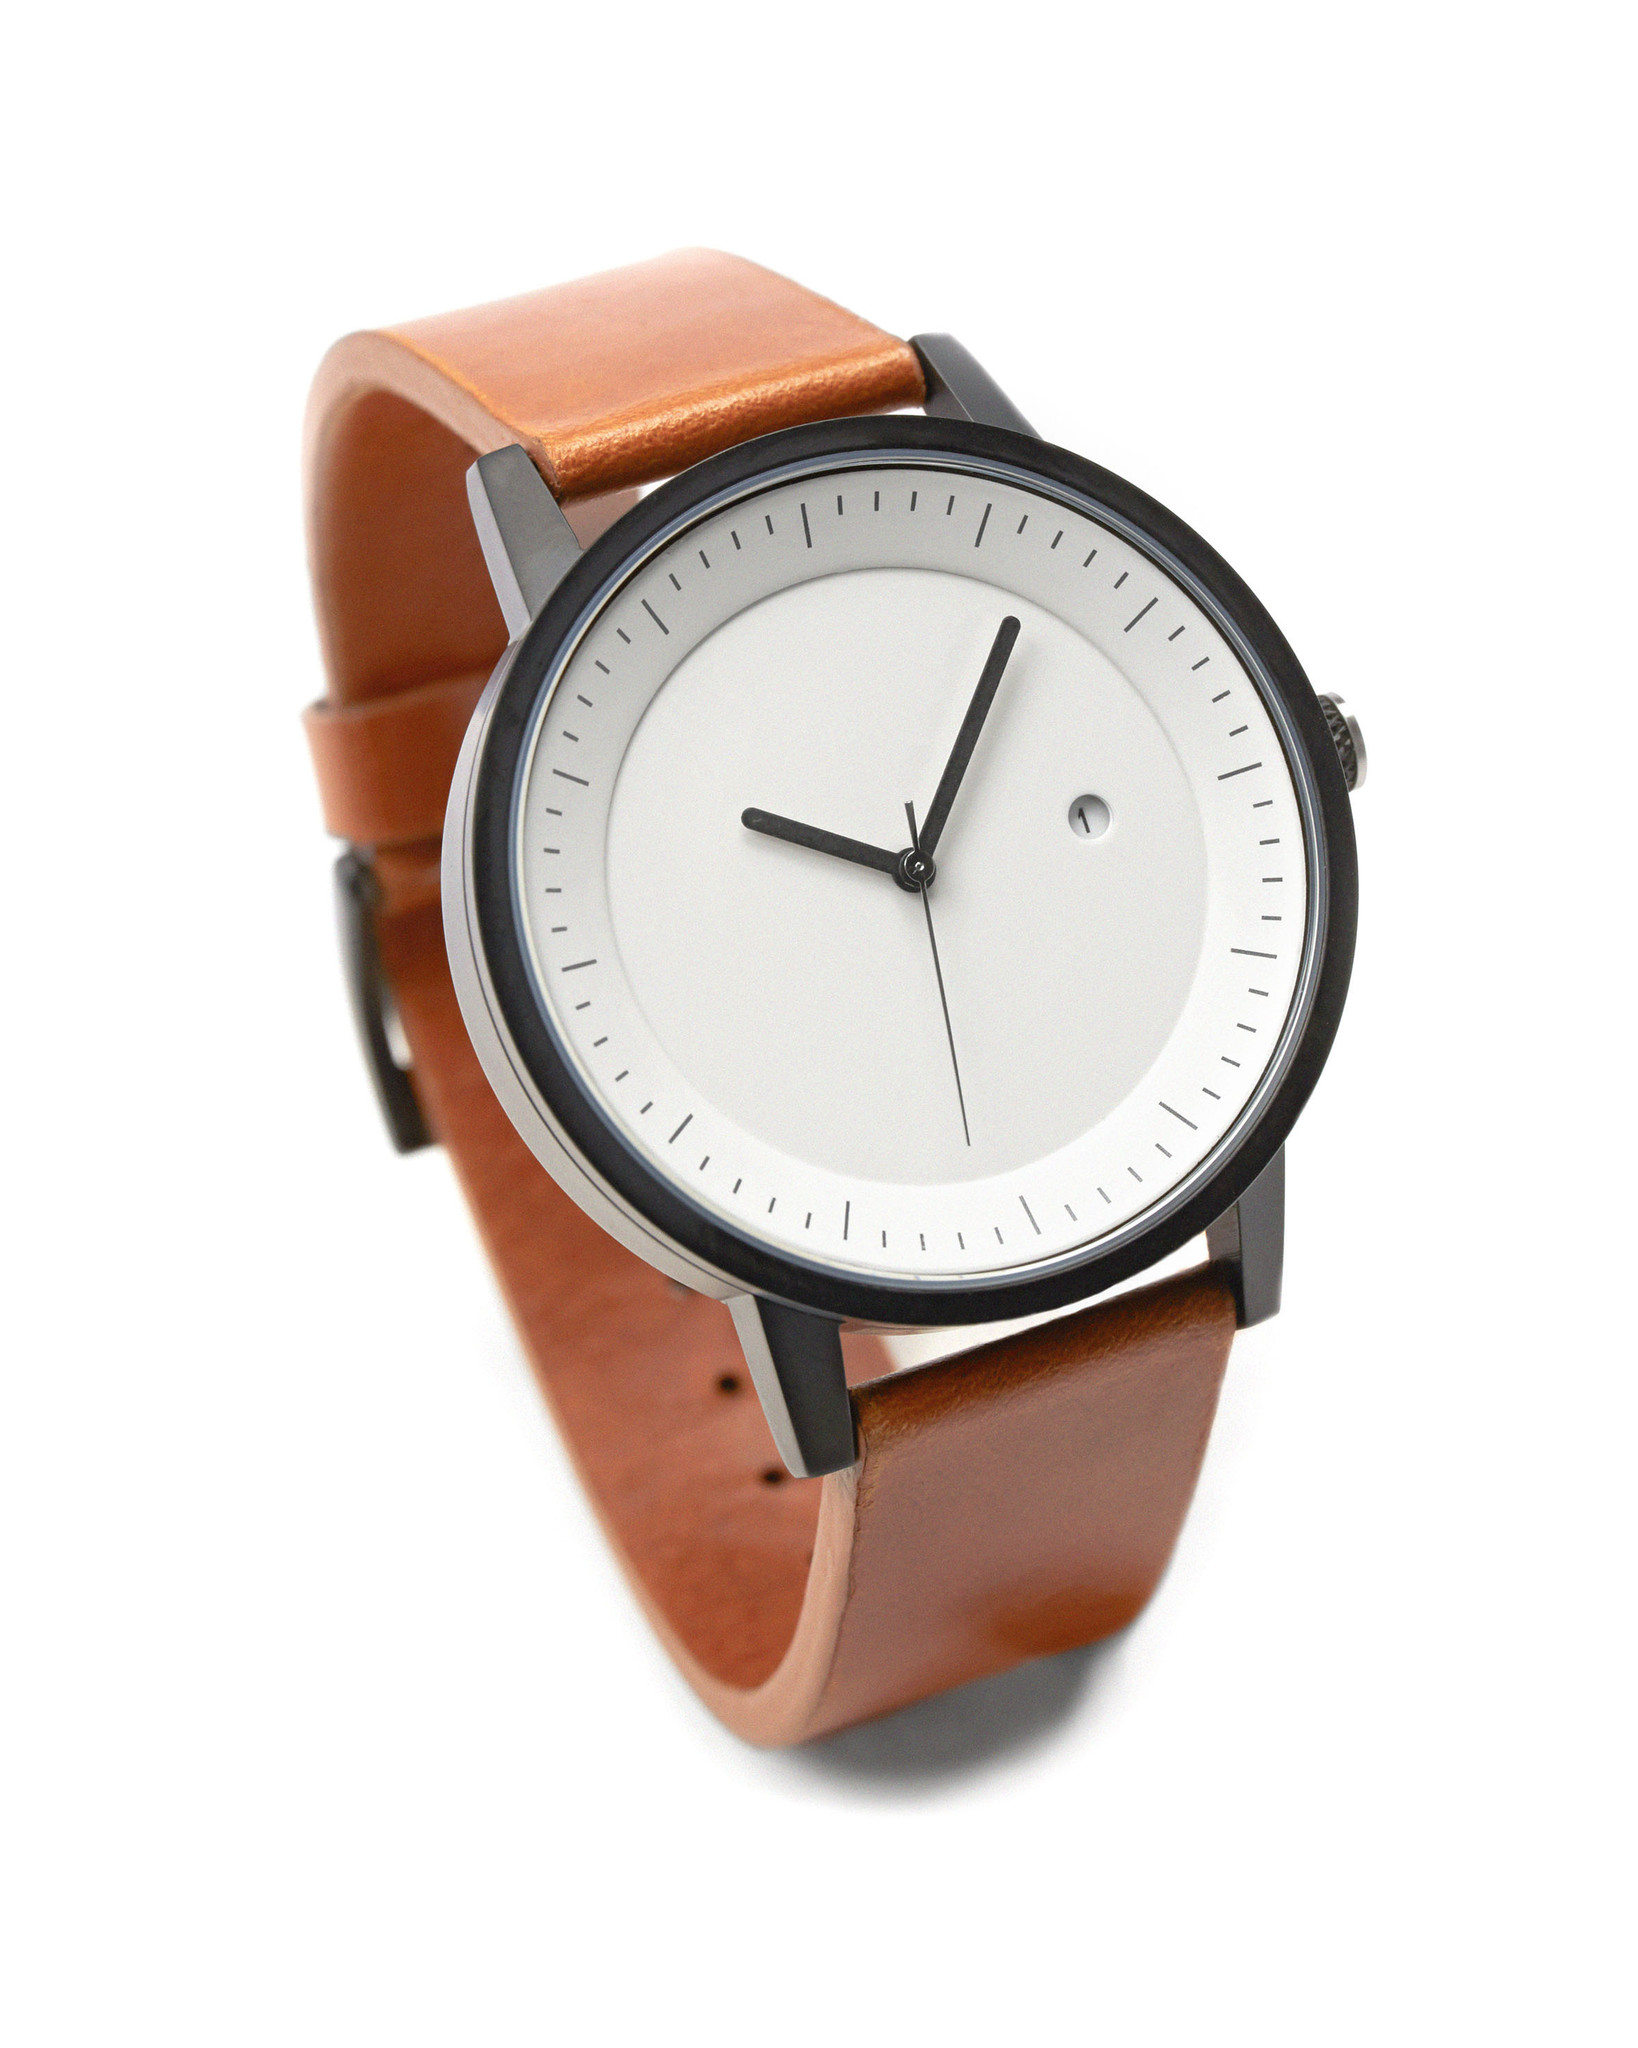 Swco simple watch company unisex earl leather watch tan black white ebay for Black tan watch